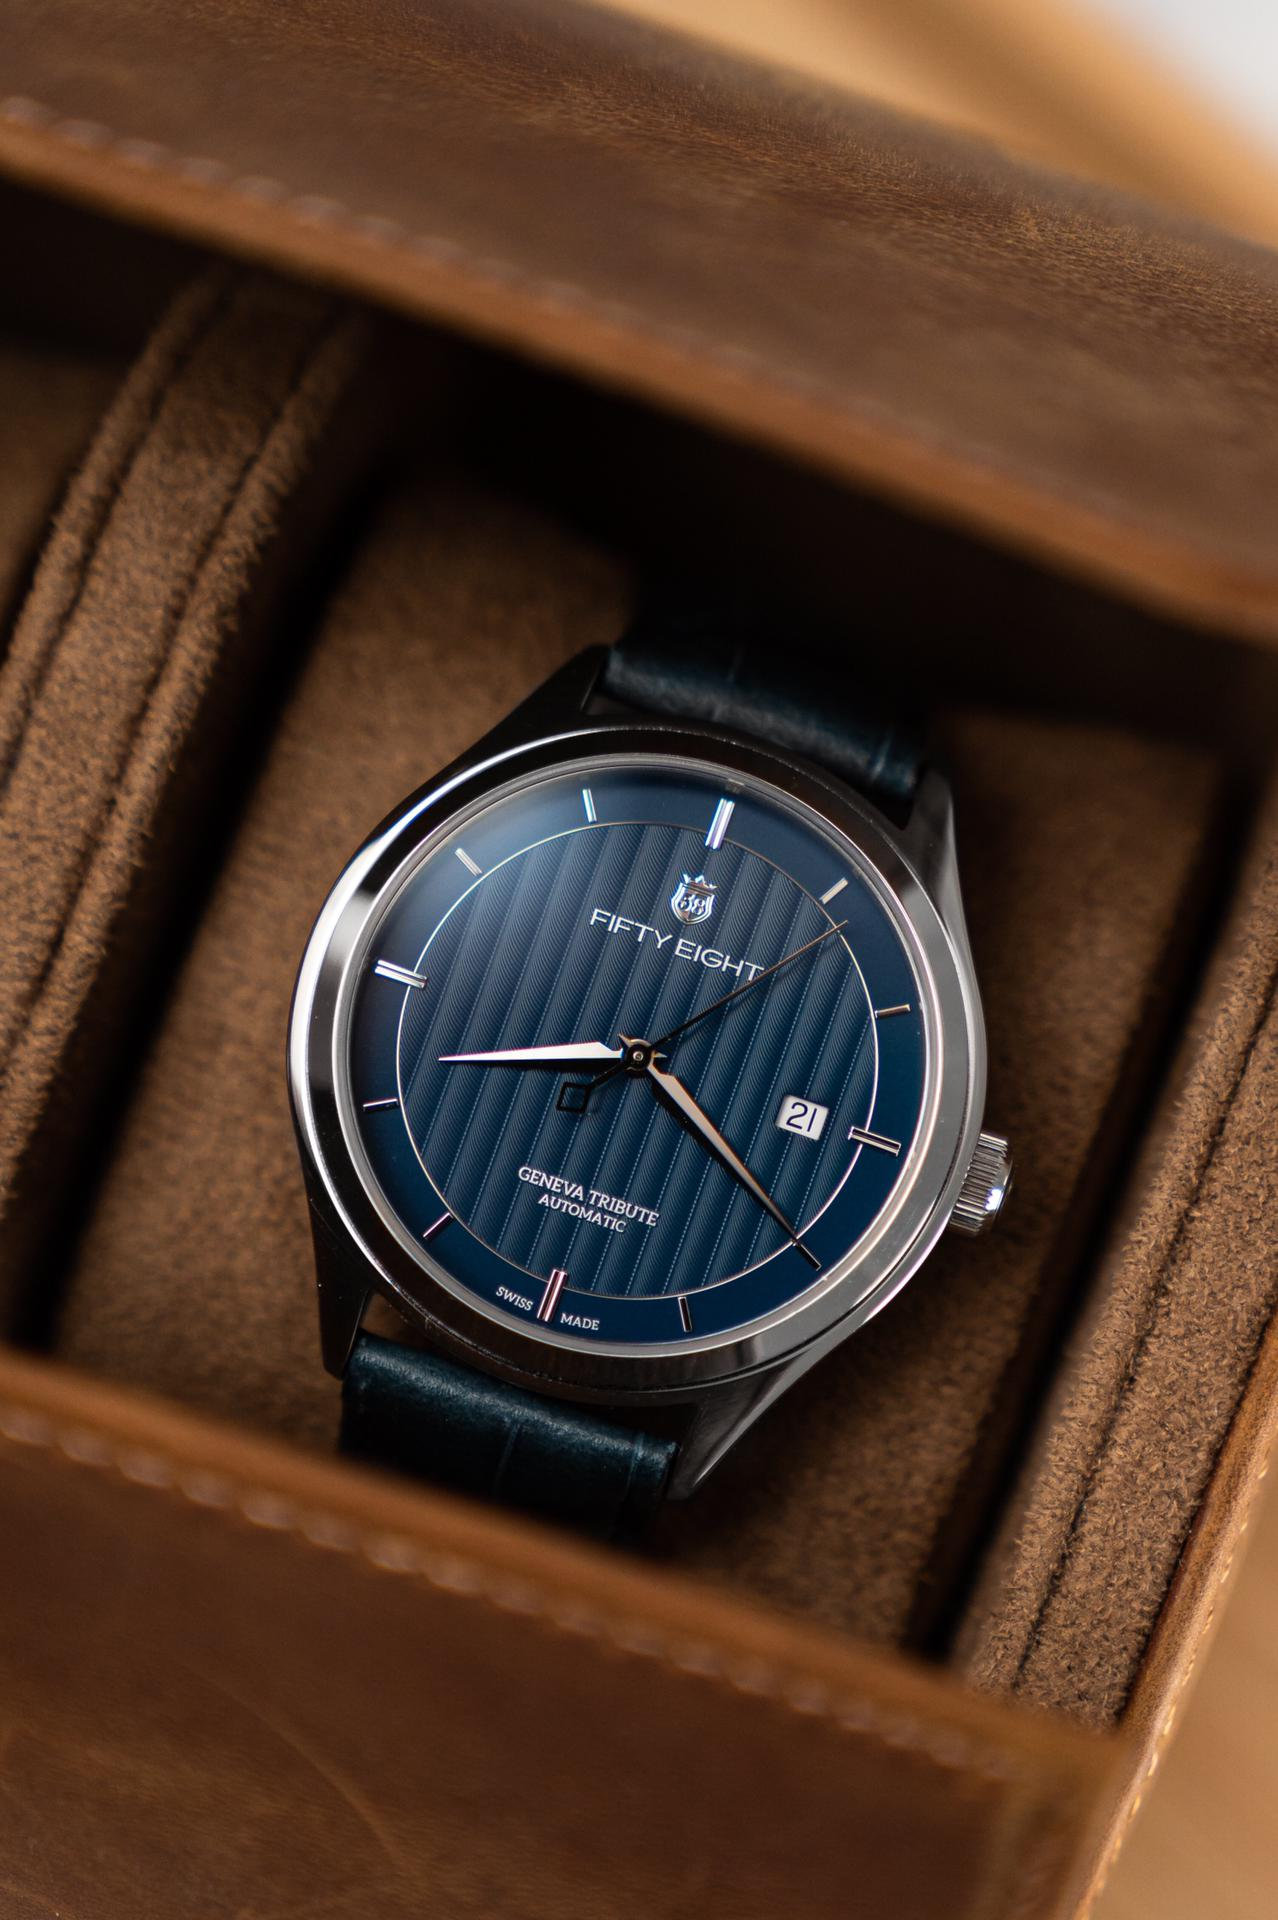 INTRODUCING: A return to the dapper dress watch with Swiss-manufactured debut brand, Fifty Eight